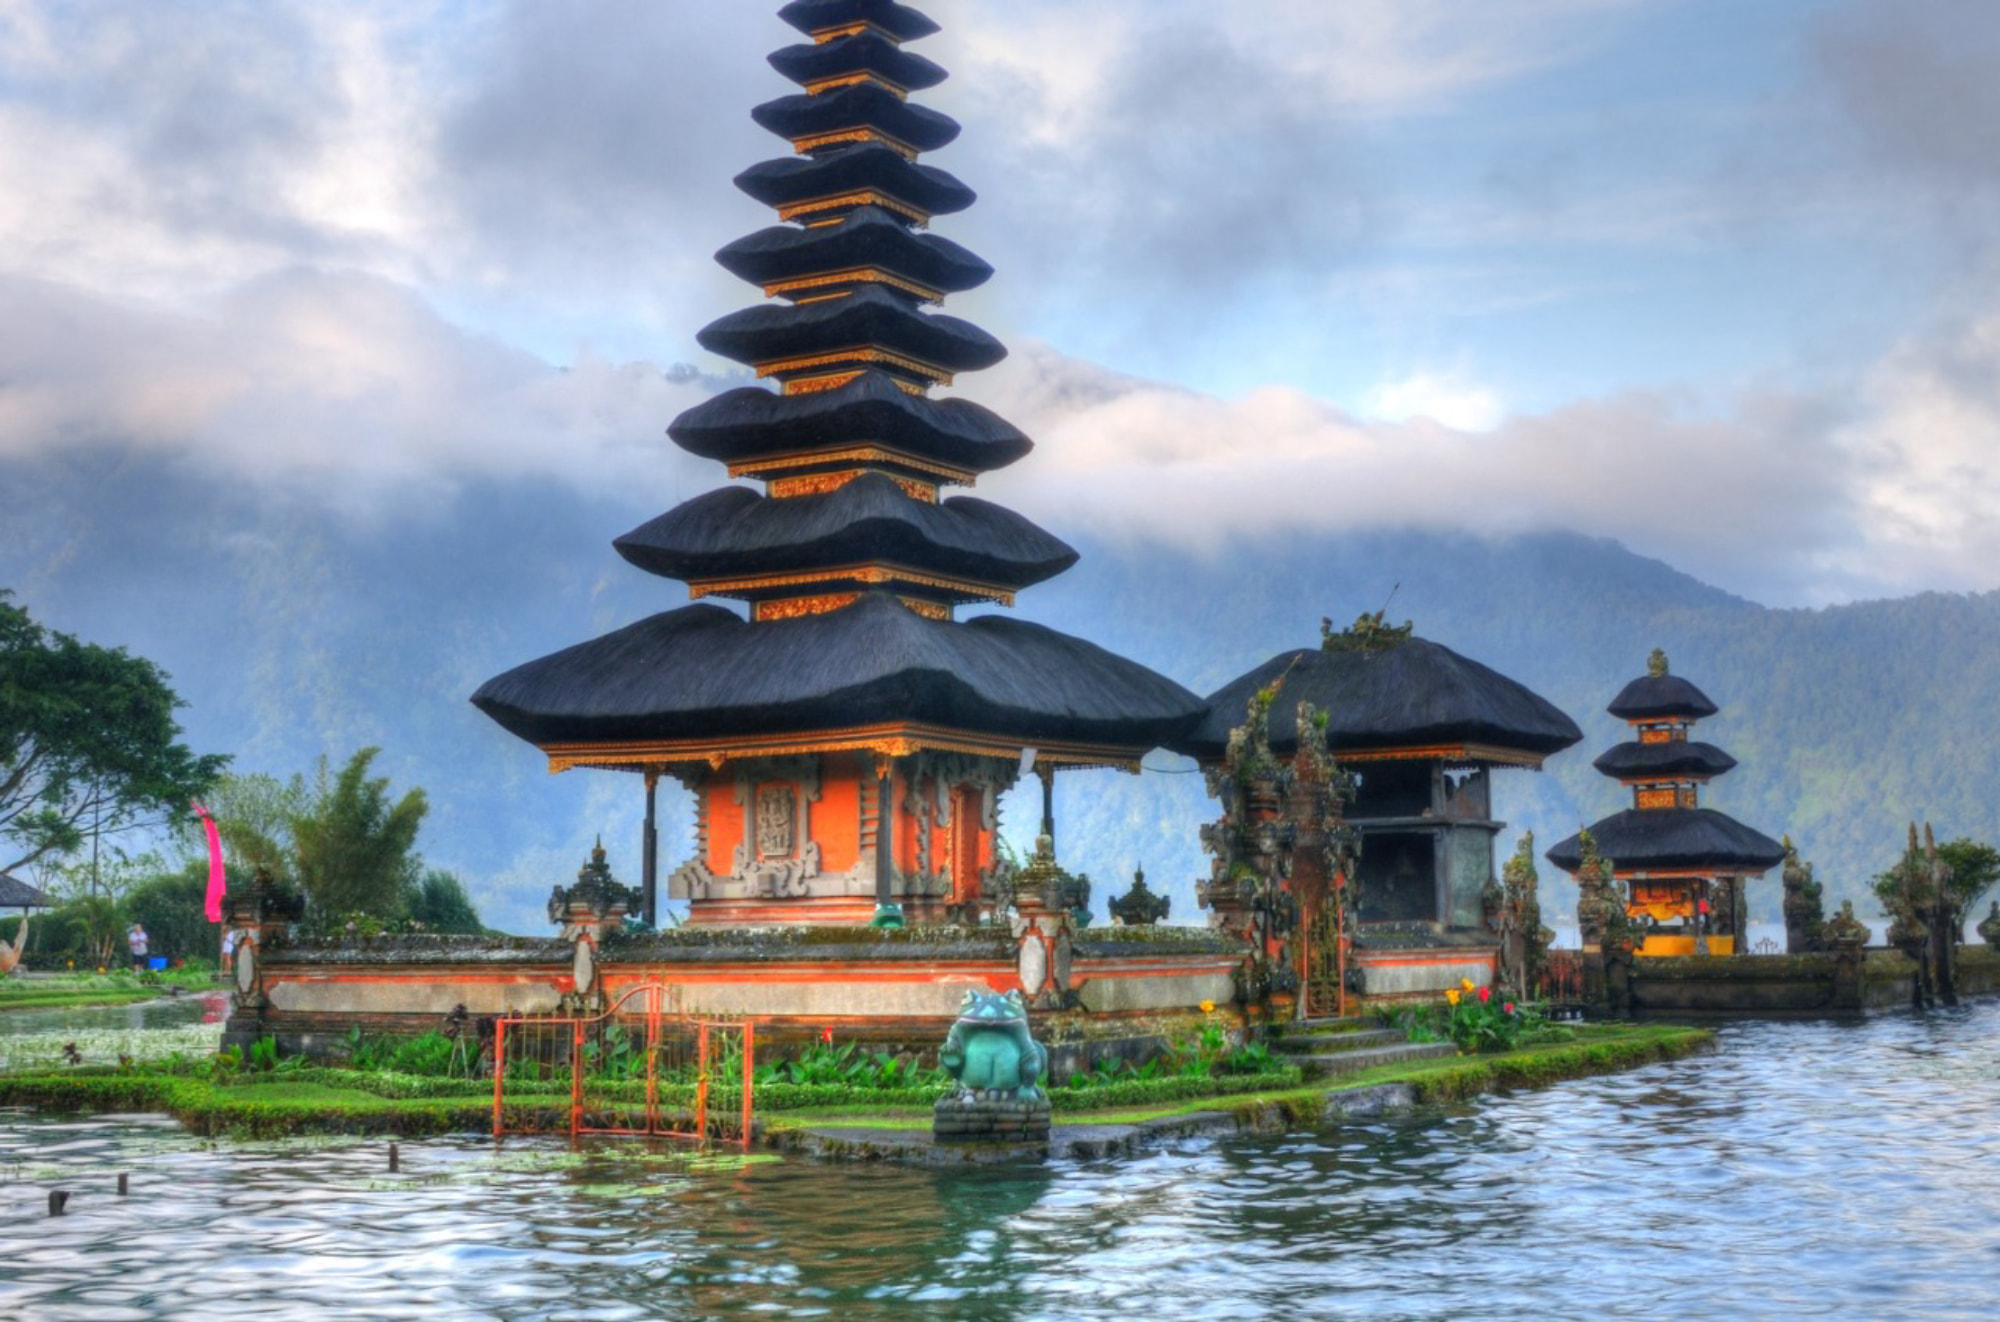 Getting to Bali, Indonesia